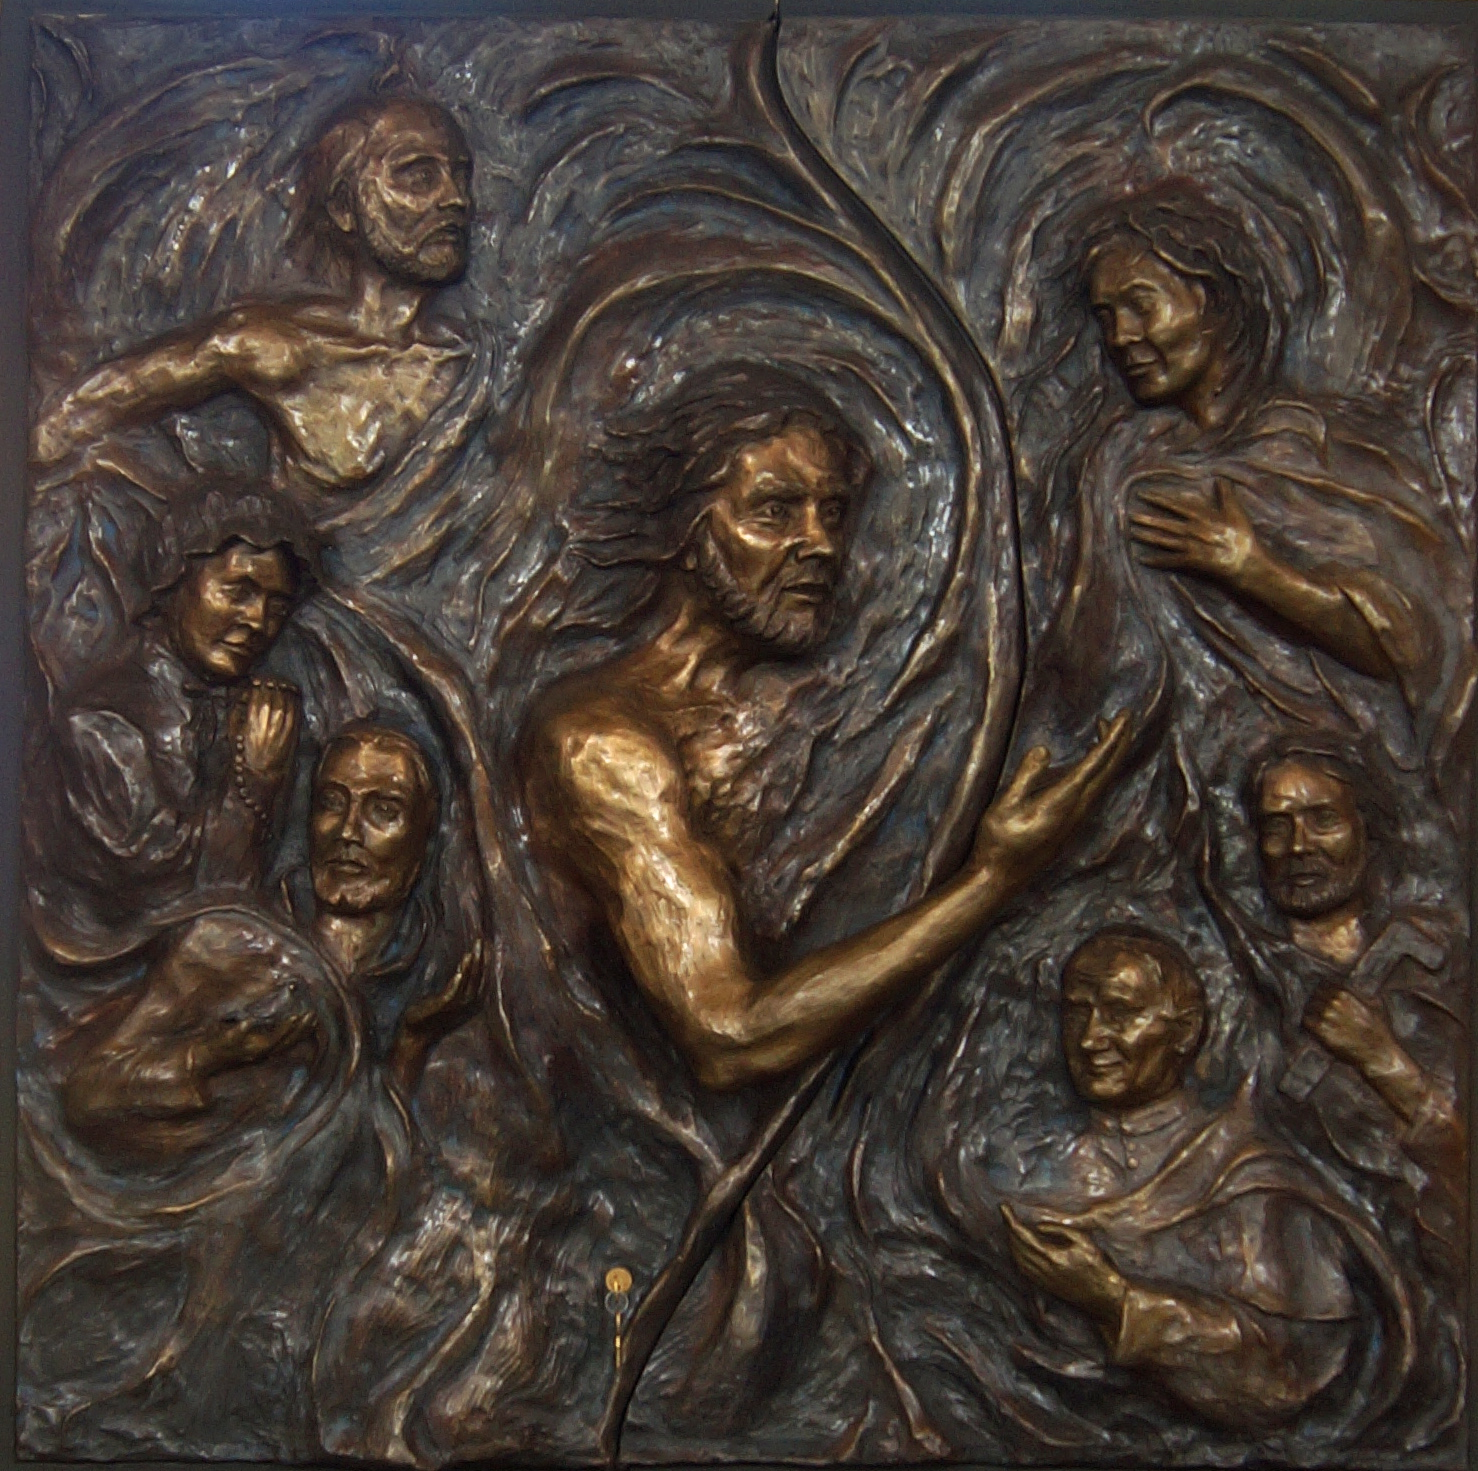 bronze relief sculpture